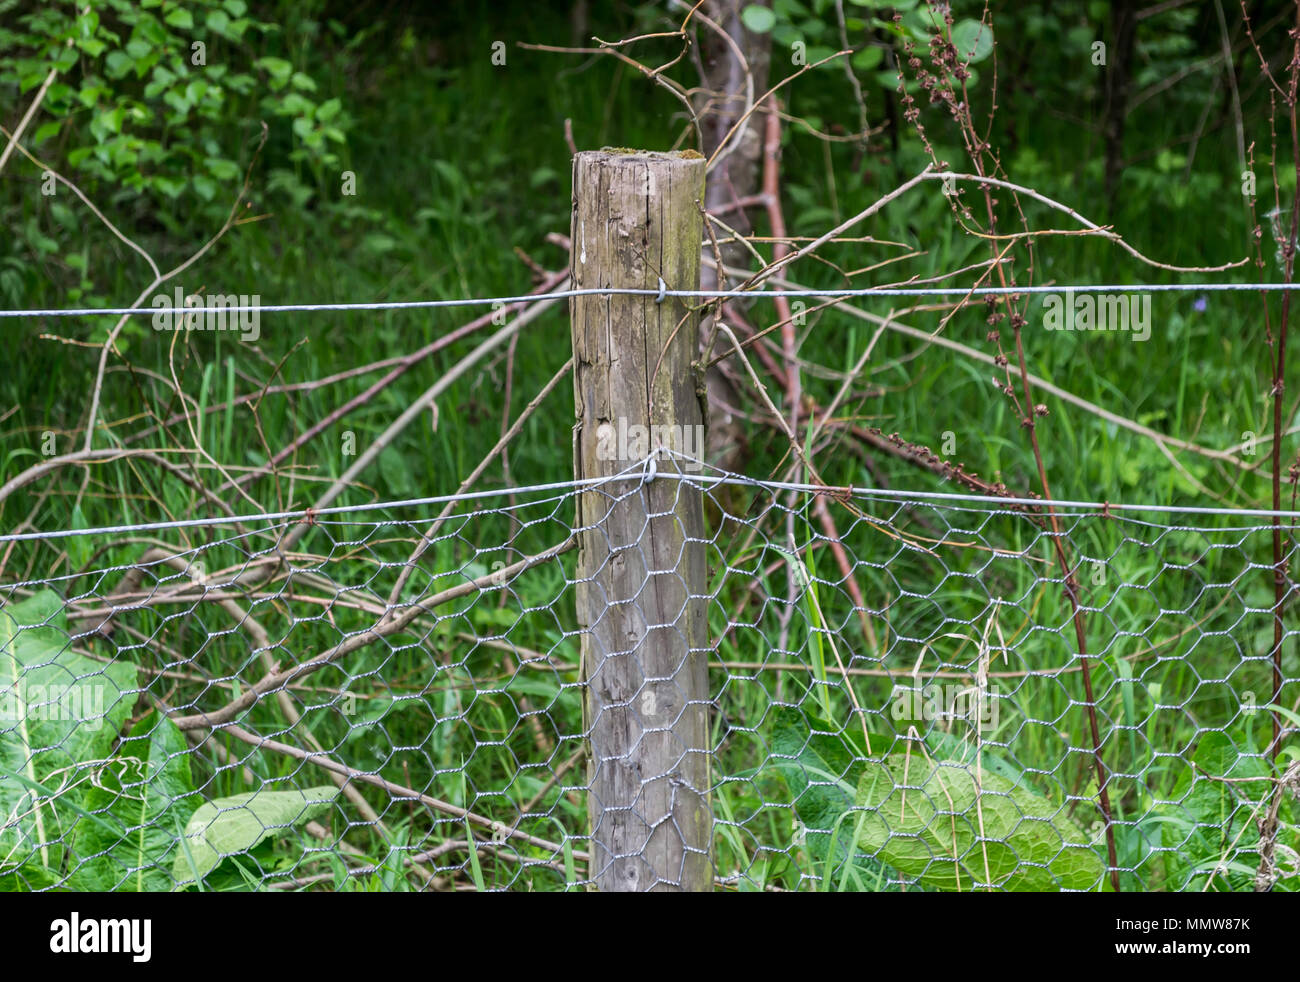 A wooden fence post holding up chicken wire with a forest in the background - Stock Image